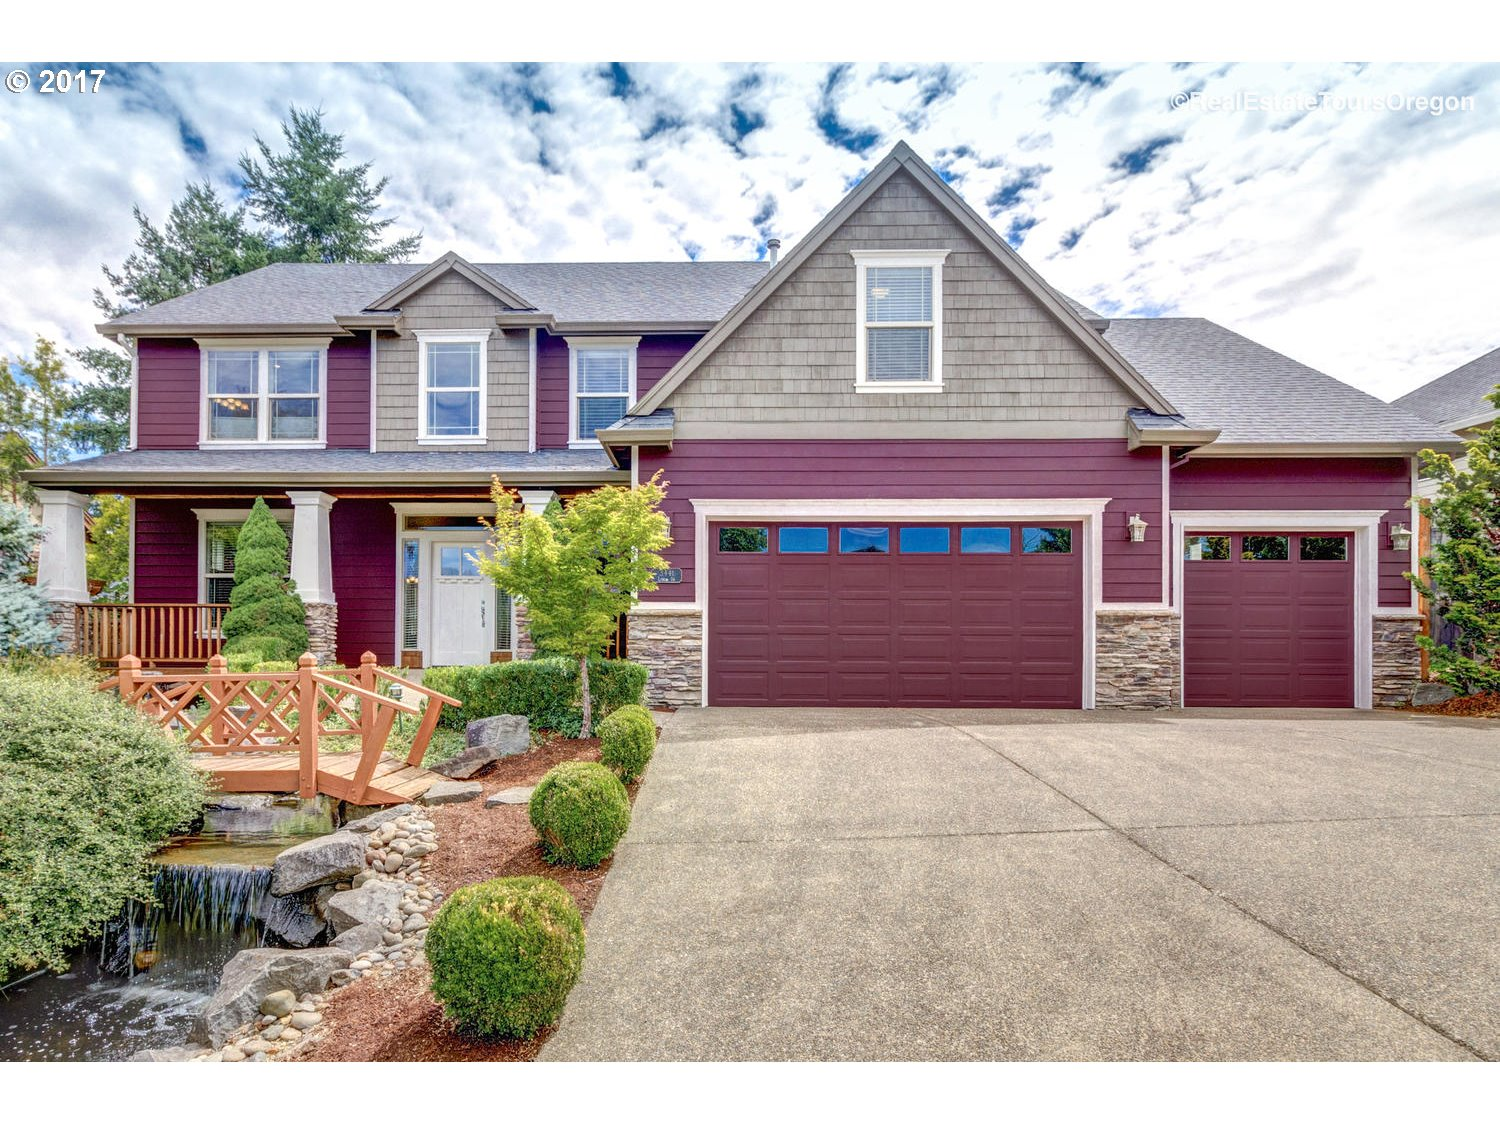 3441 LAVINA DR, Forest Grove, OR 97116